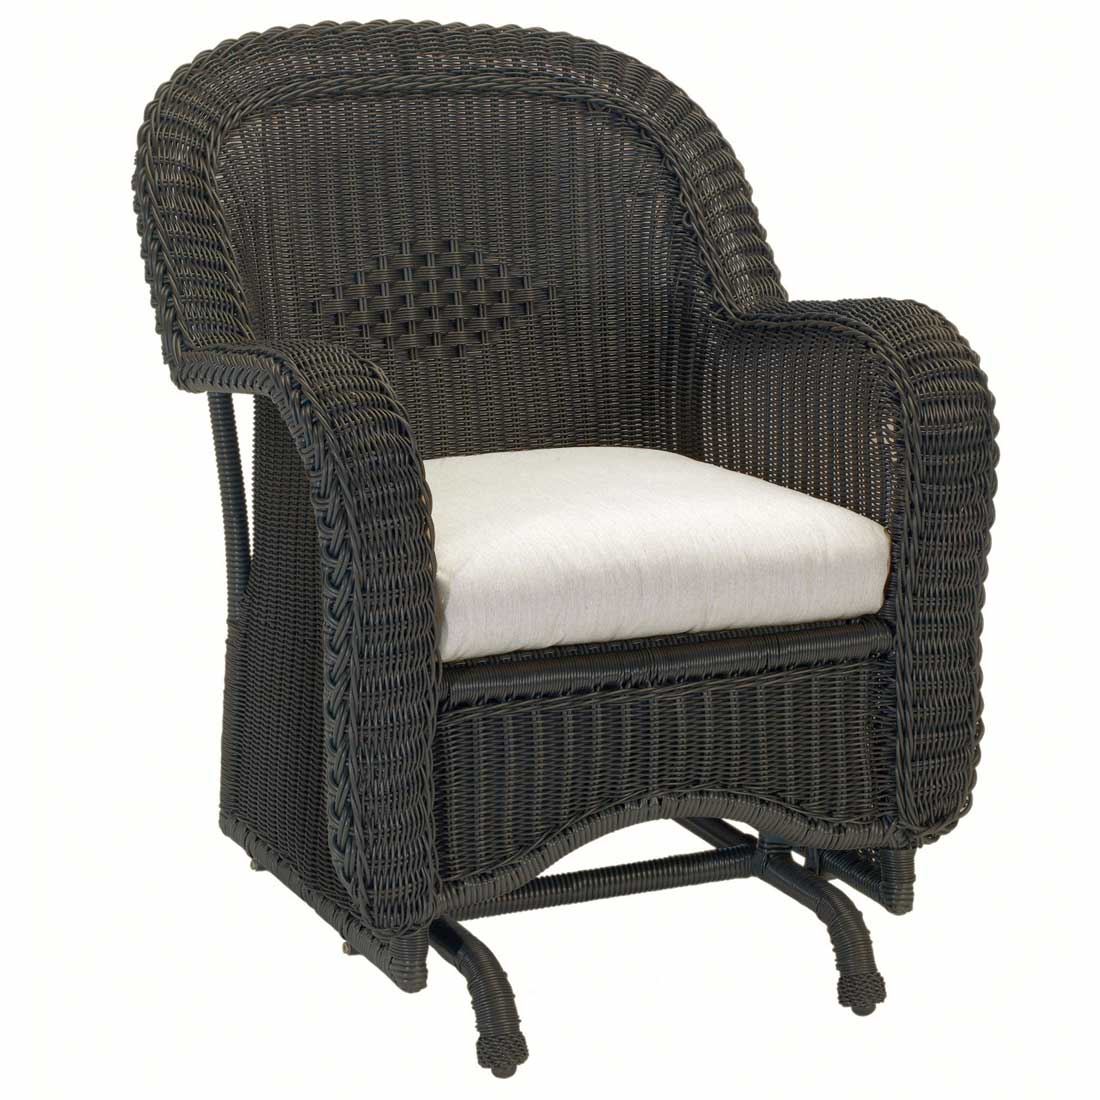 Ordinaire Classic Wicker Single Glider